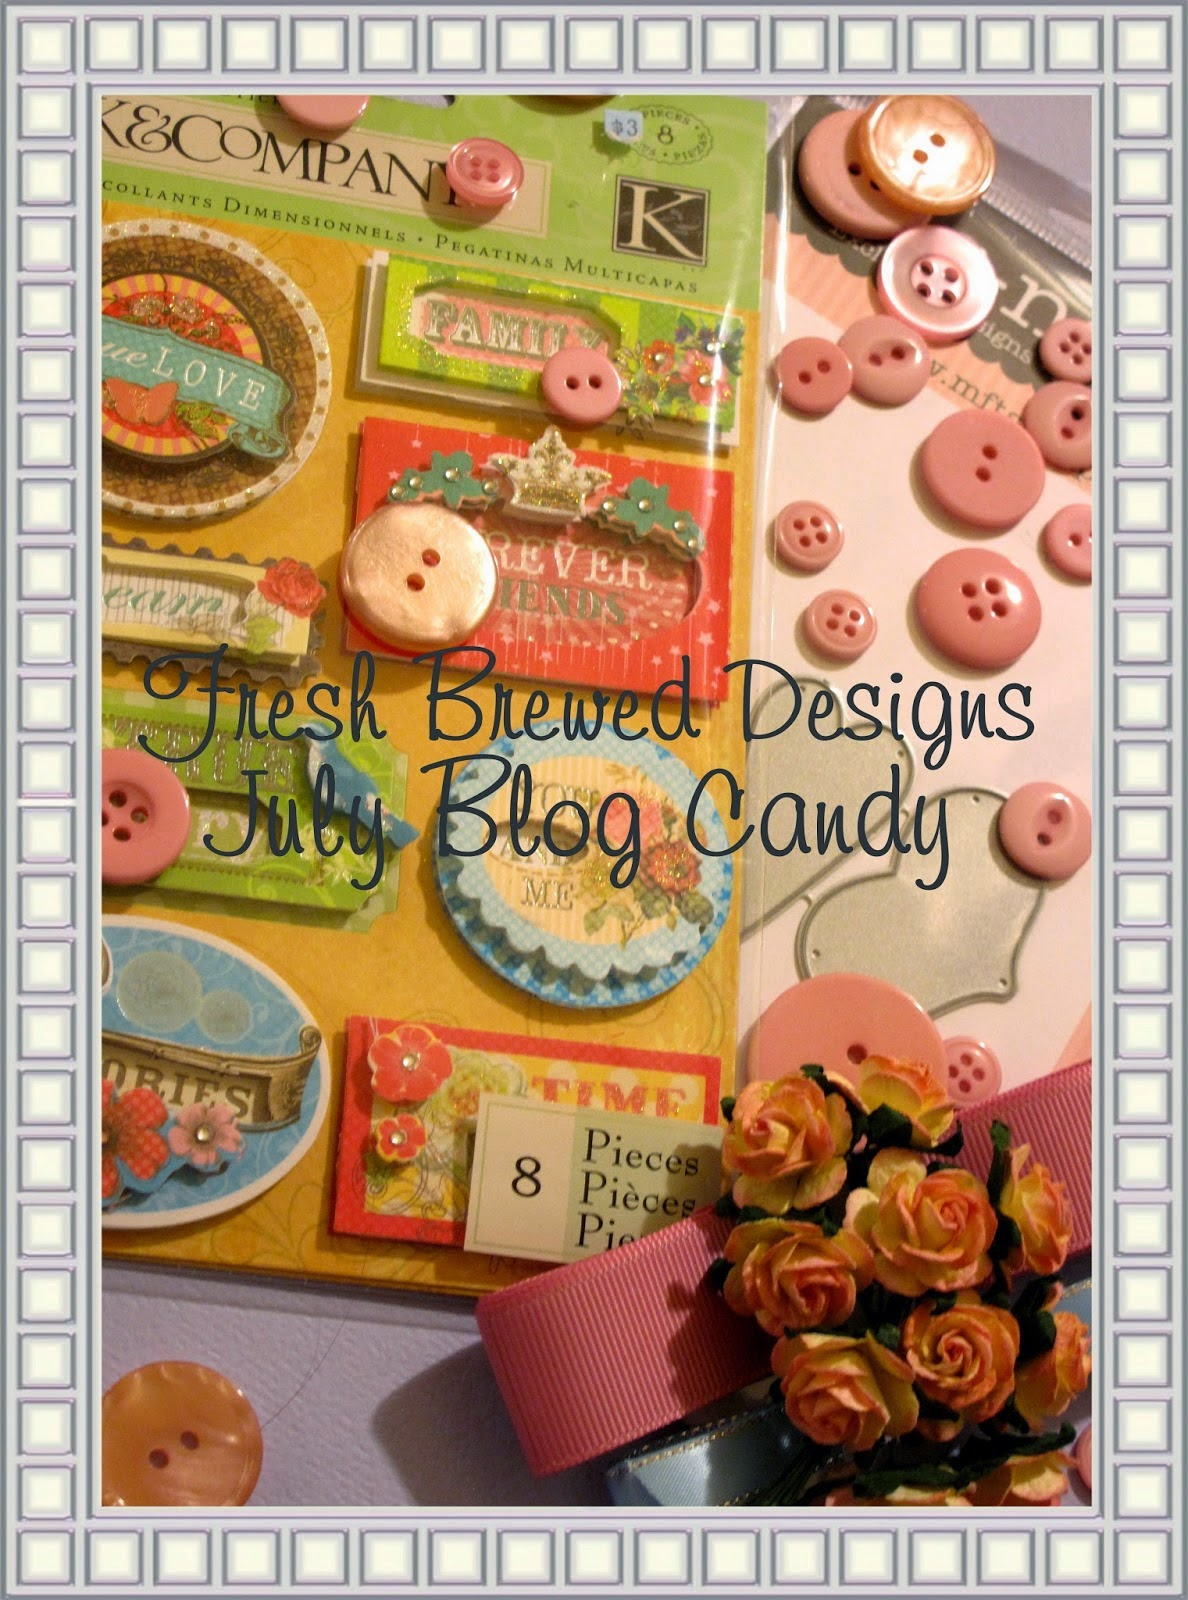 Fresh Brewed Designs July Candy!